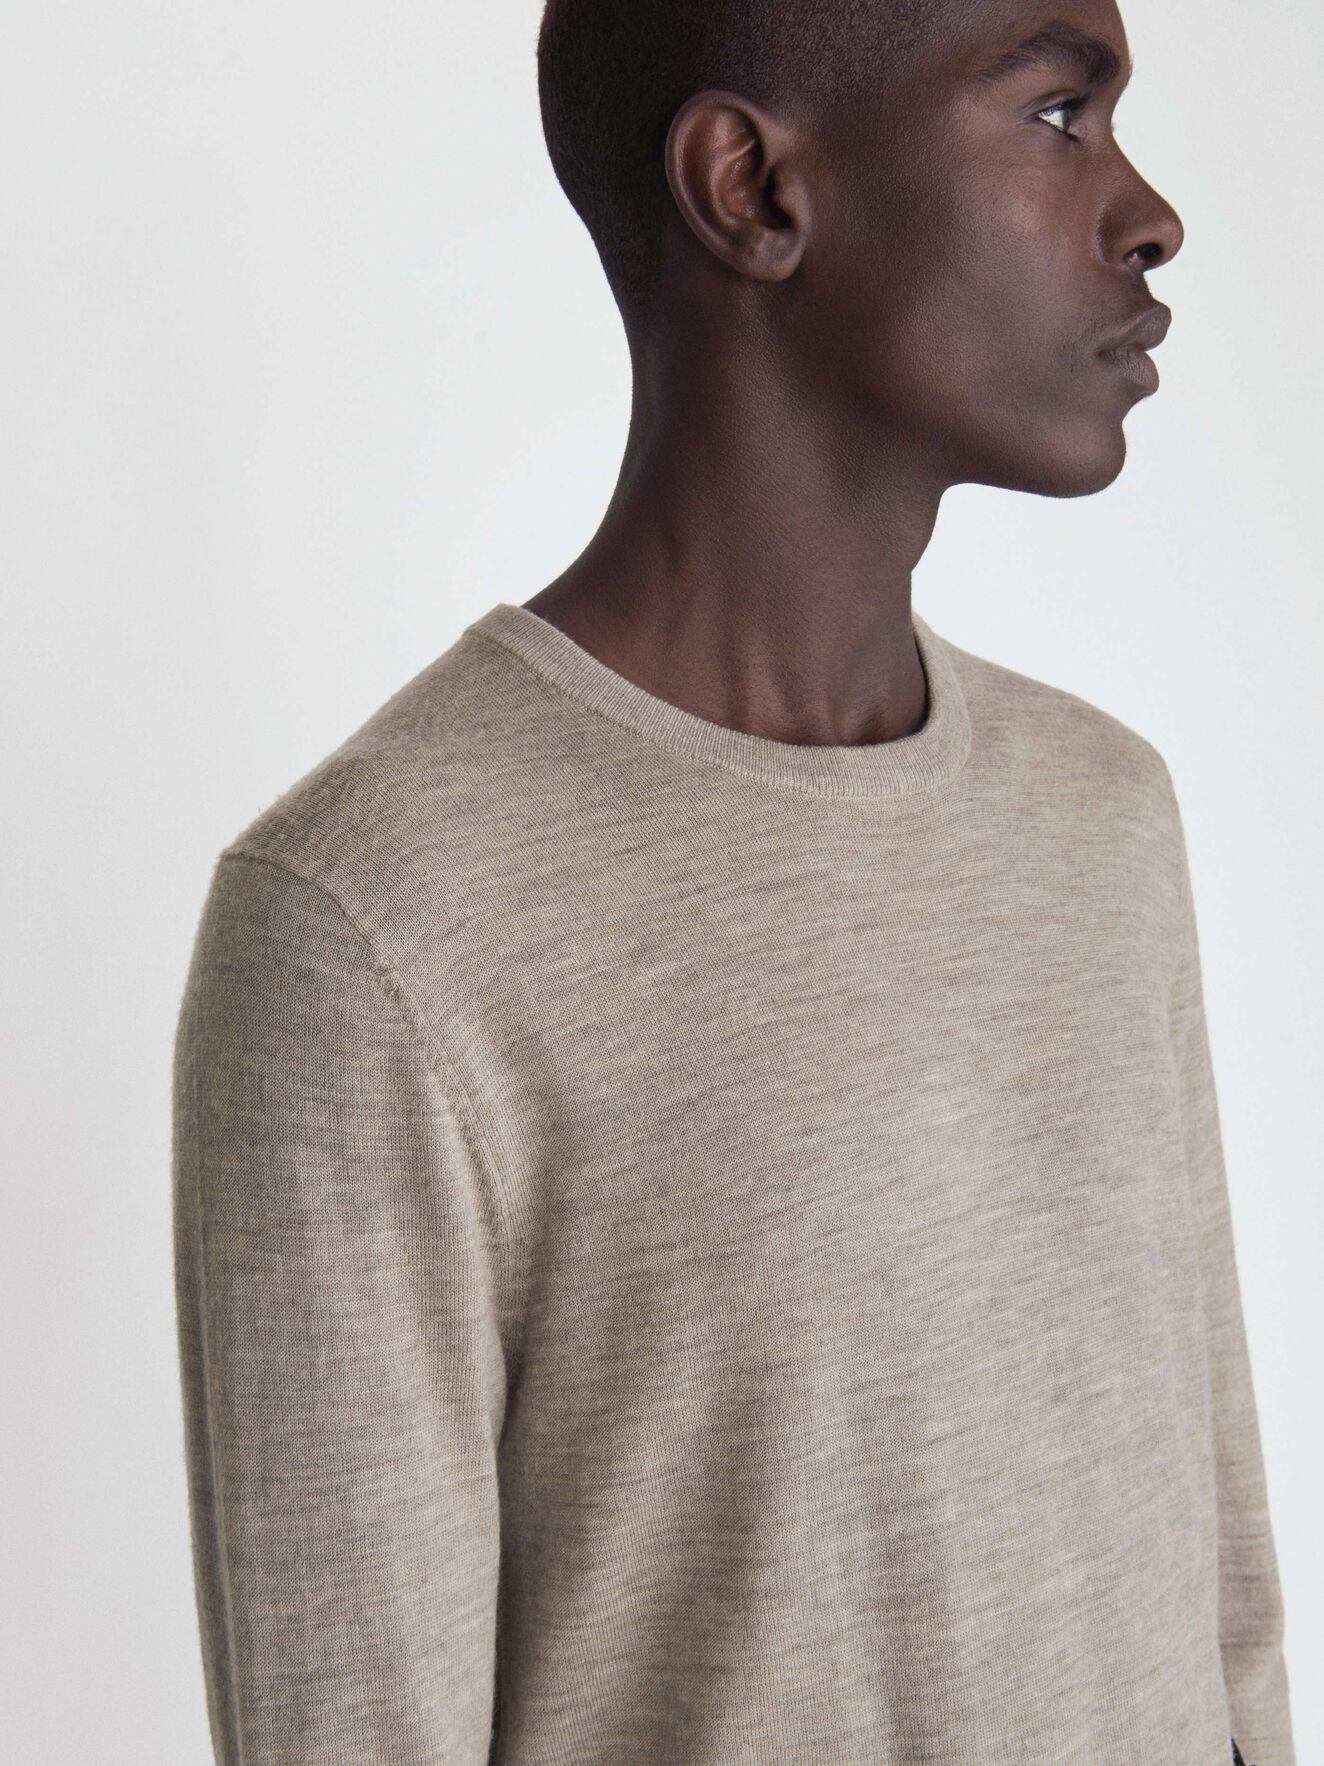 Nichols Pullover in Irish Cream from Tiger of Sweden